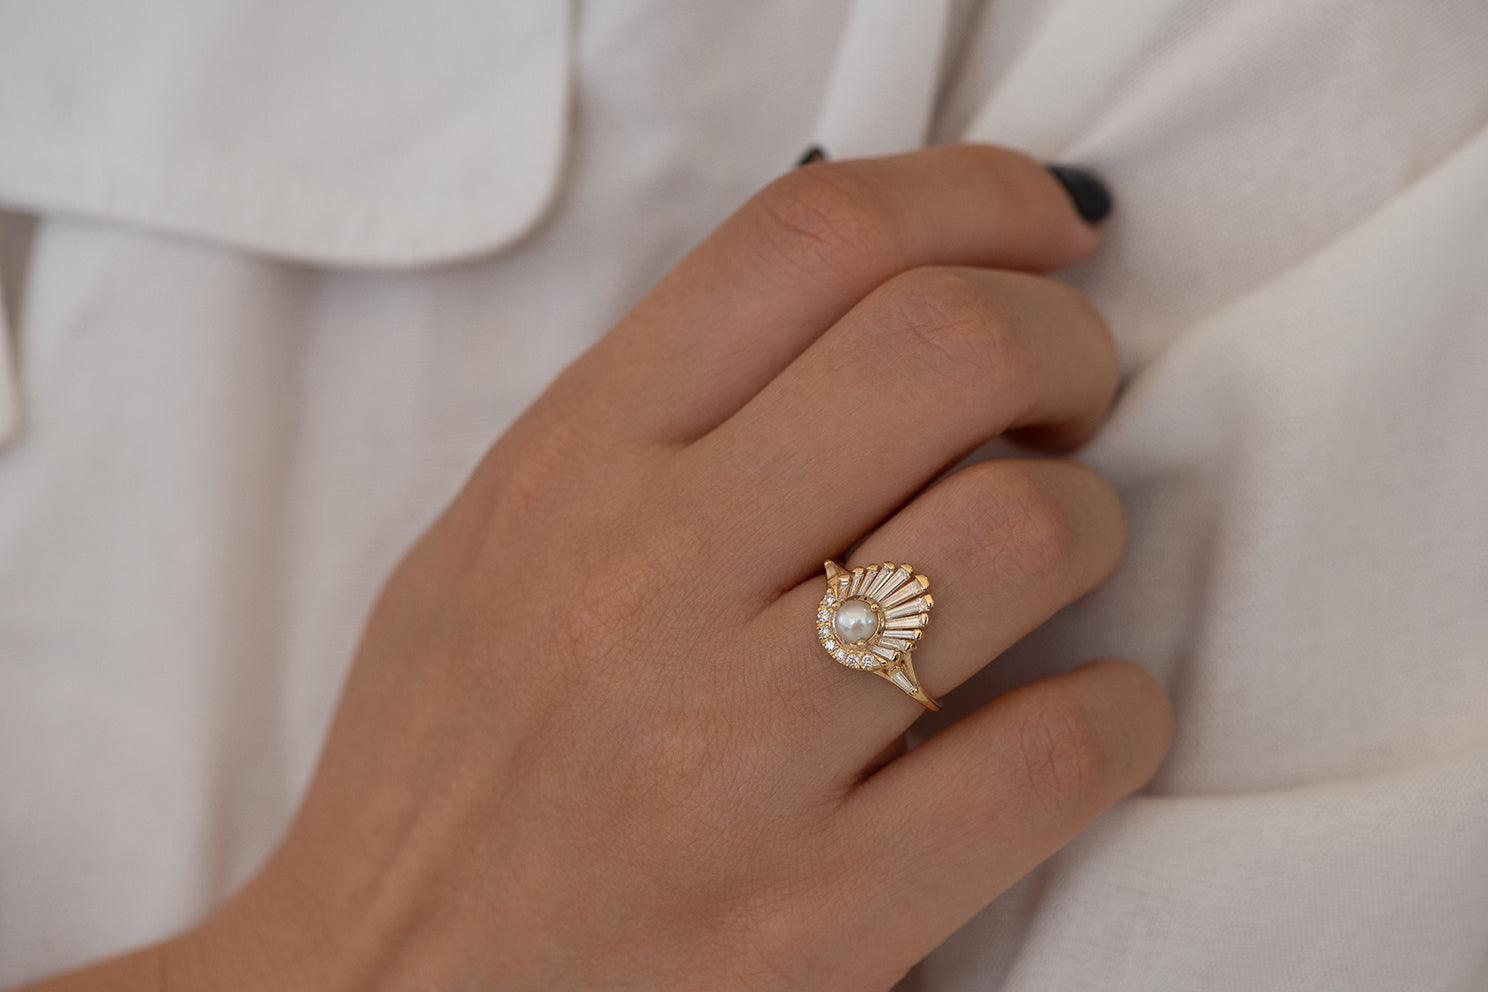 Diamond and Pearl Engagement Ring - Baguette Diamond Shell Ring on Hand in Shadow